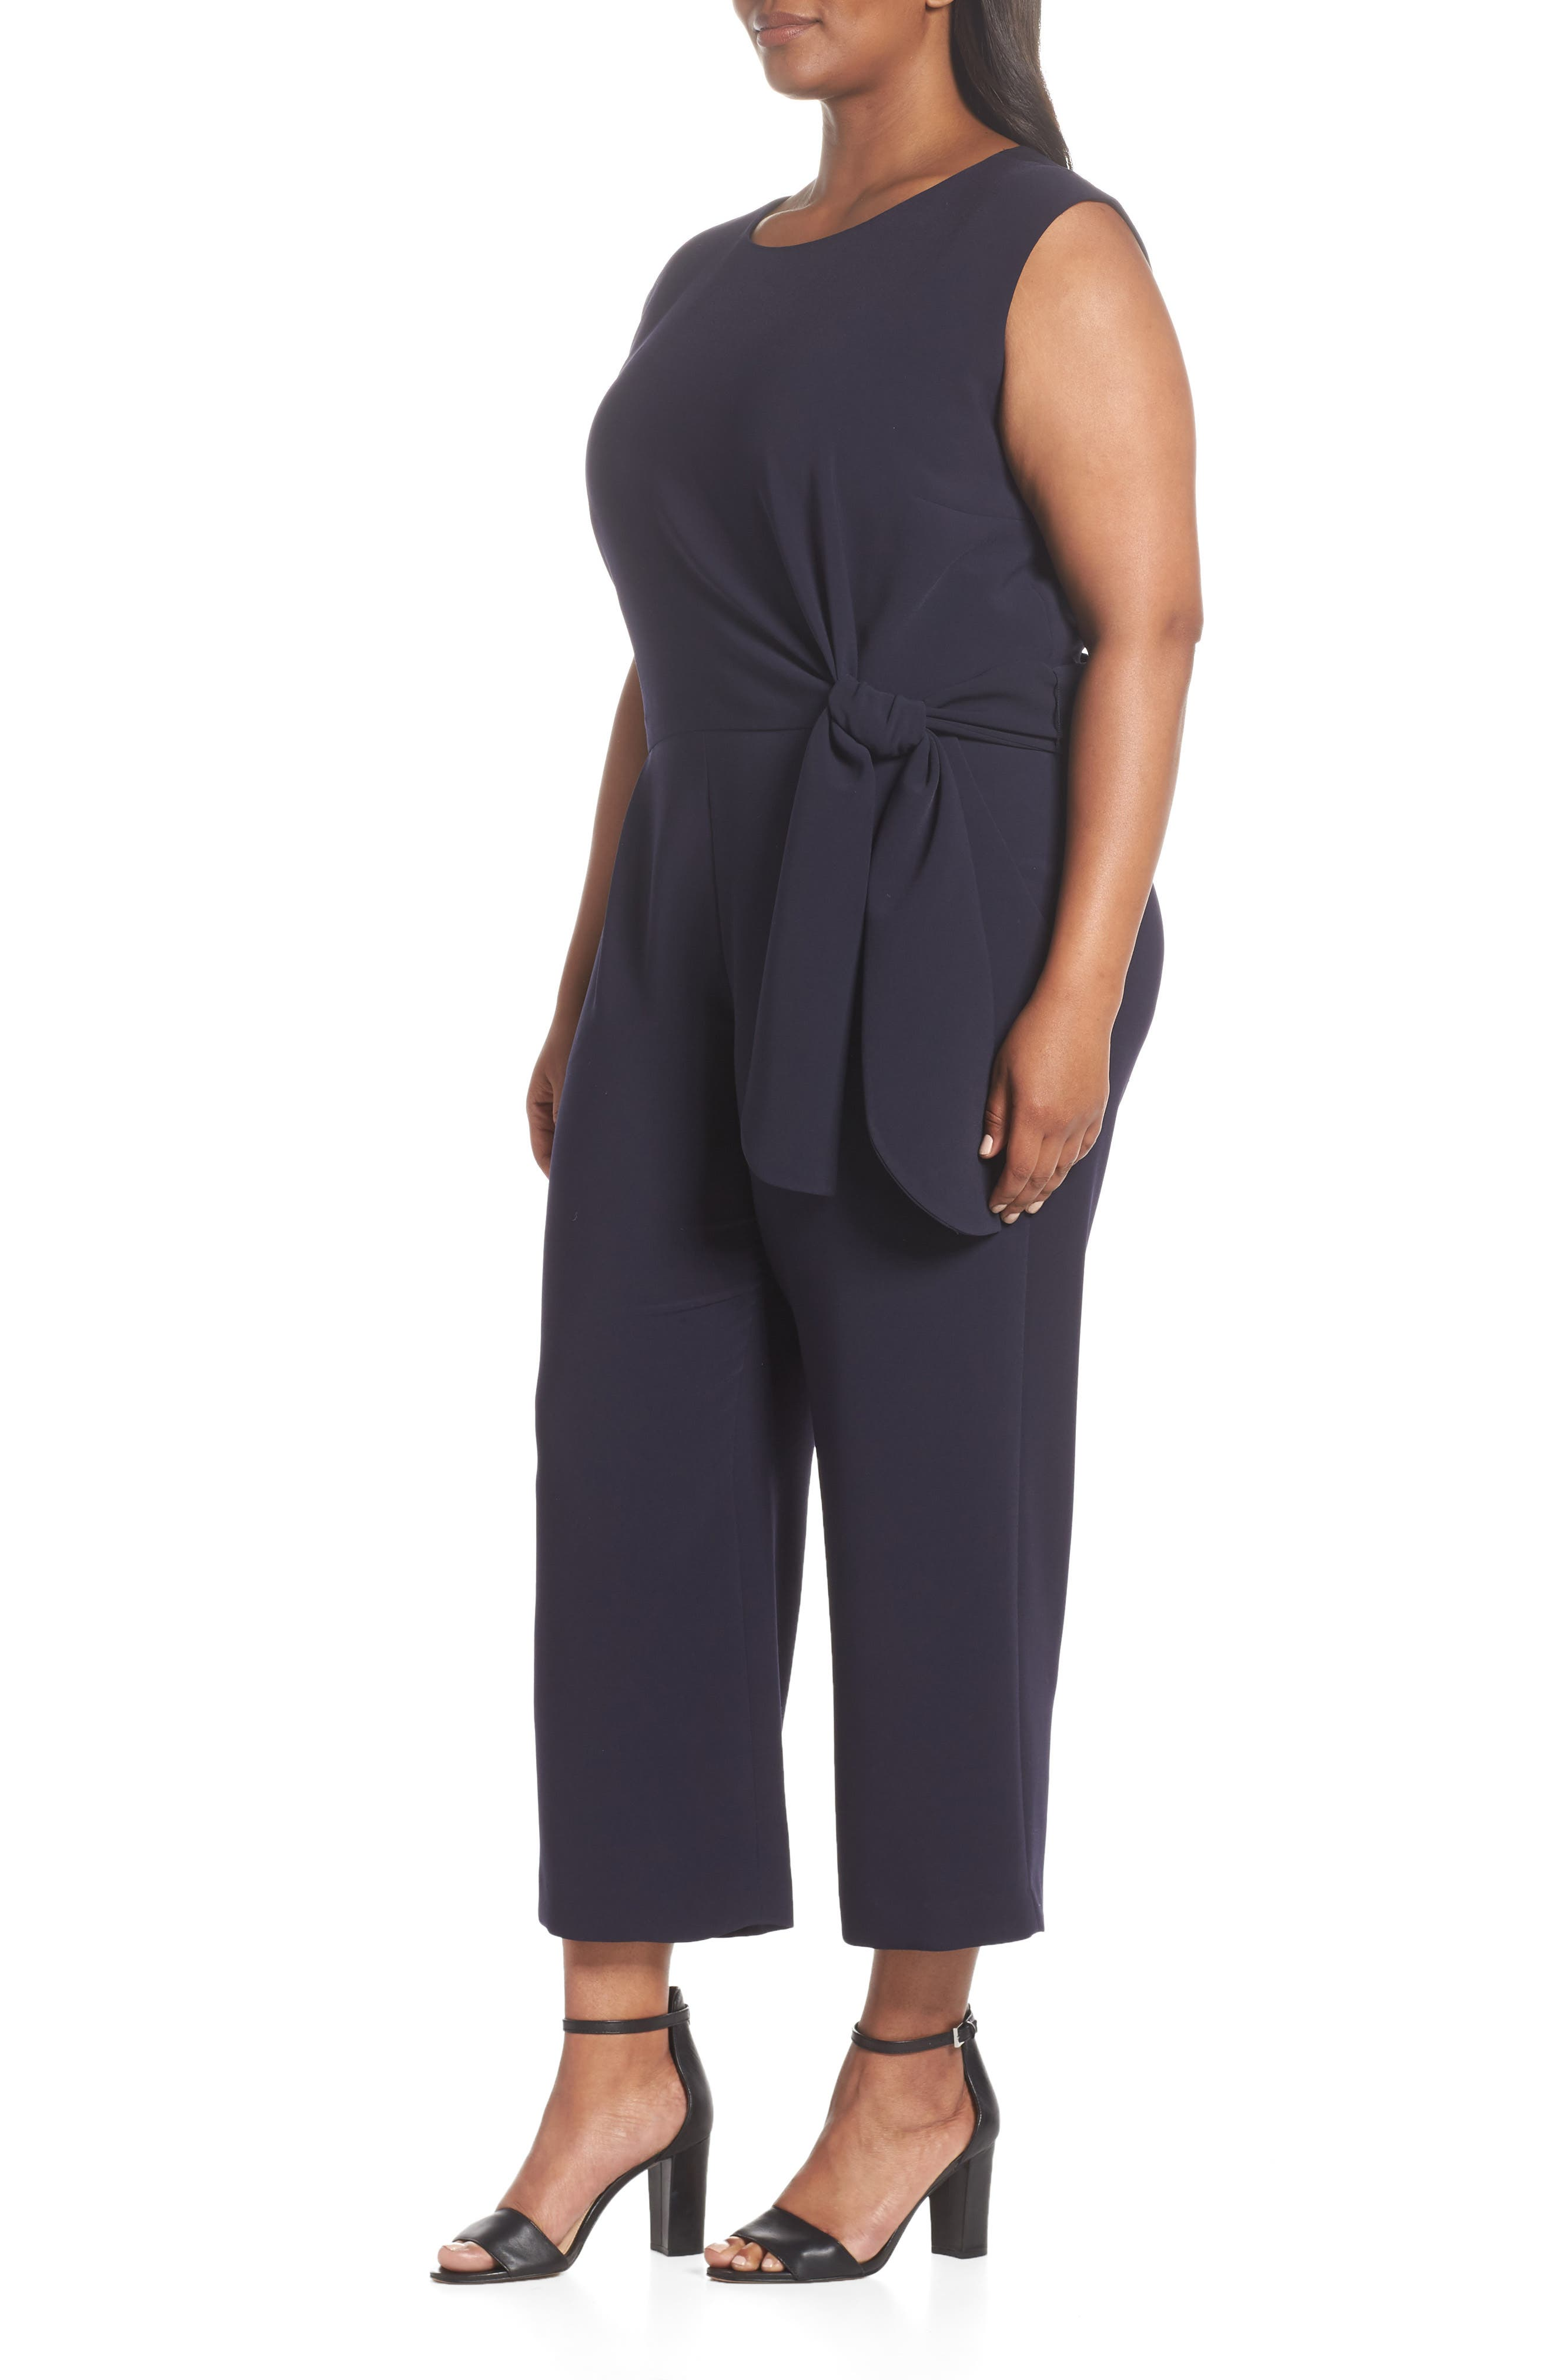 TAHARI, Tie Waist Crop Crepe Jumpsuit, Alternate thumbnail 3, color, NAVY